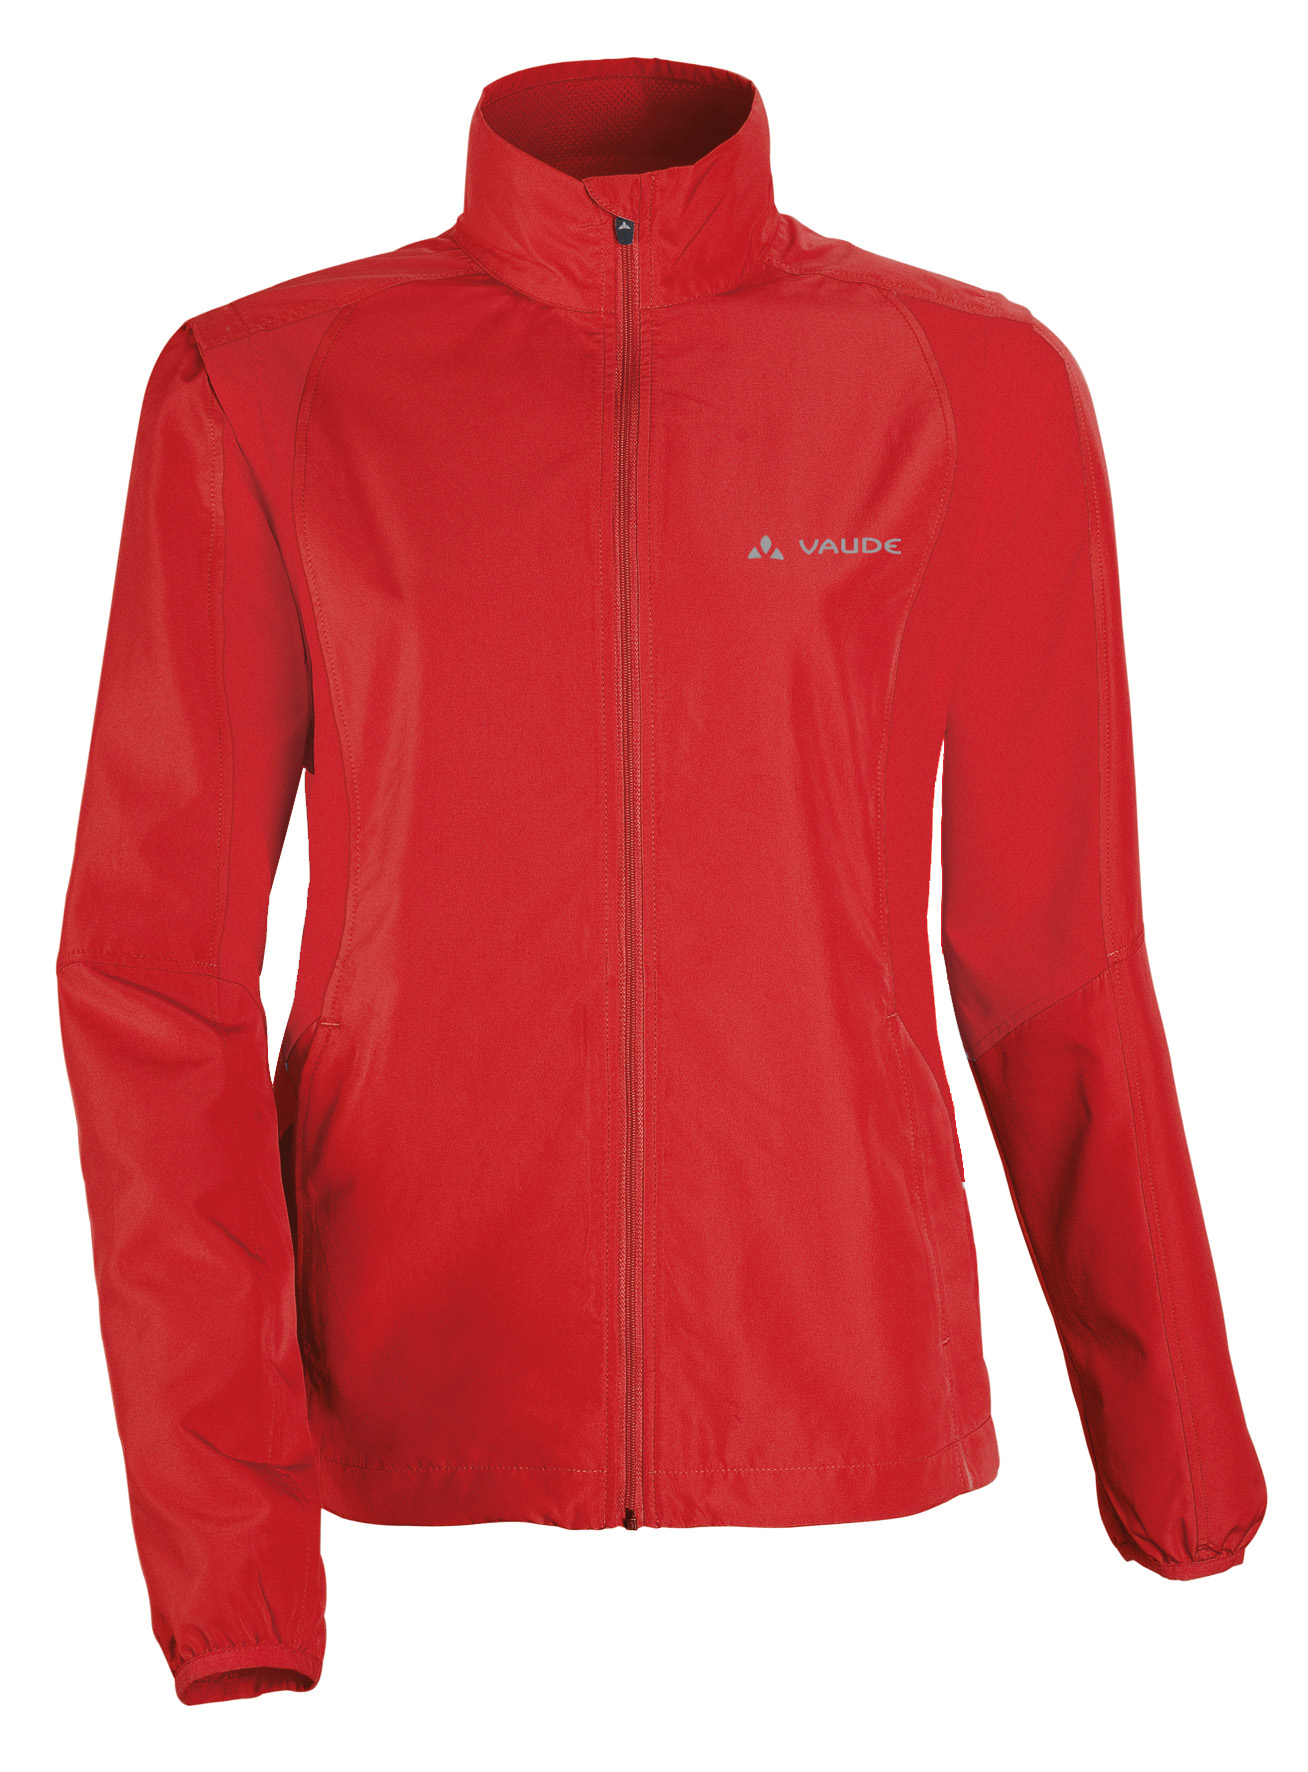 VAUDE Women´s Dundee Classic ZO Jacket red Größe 36 - schneider-sports